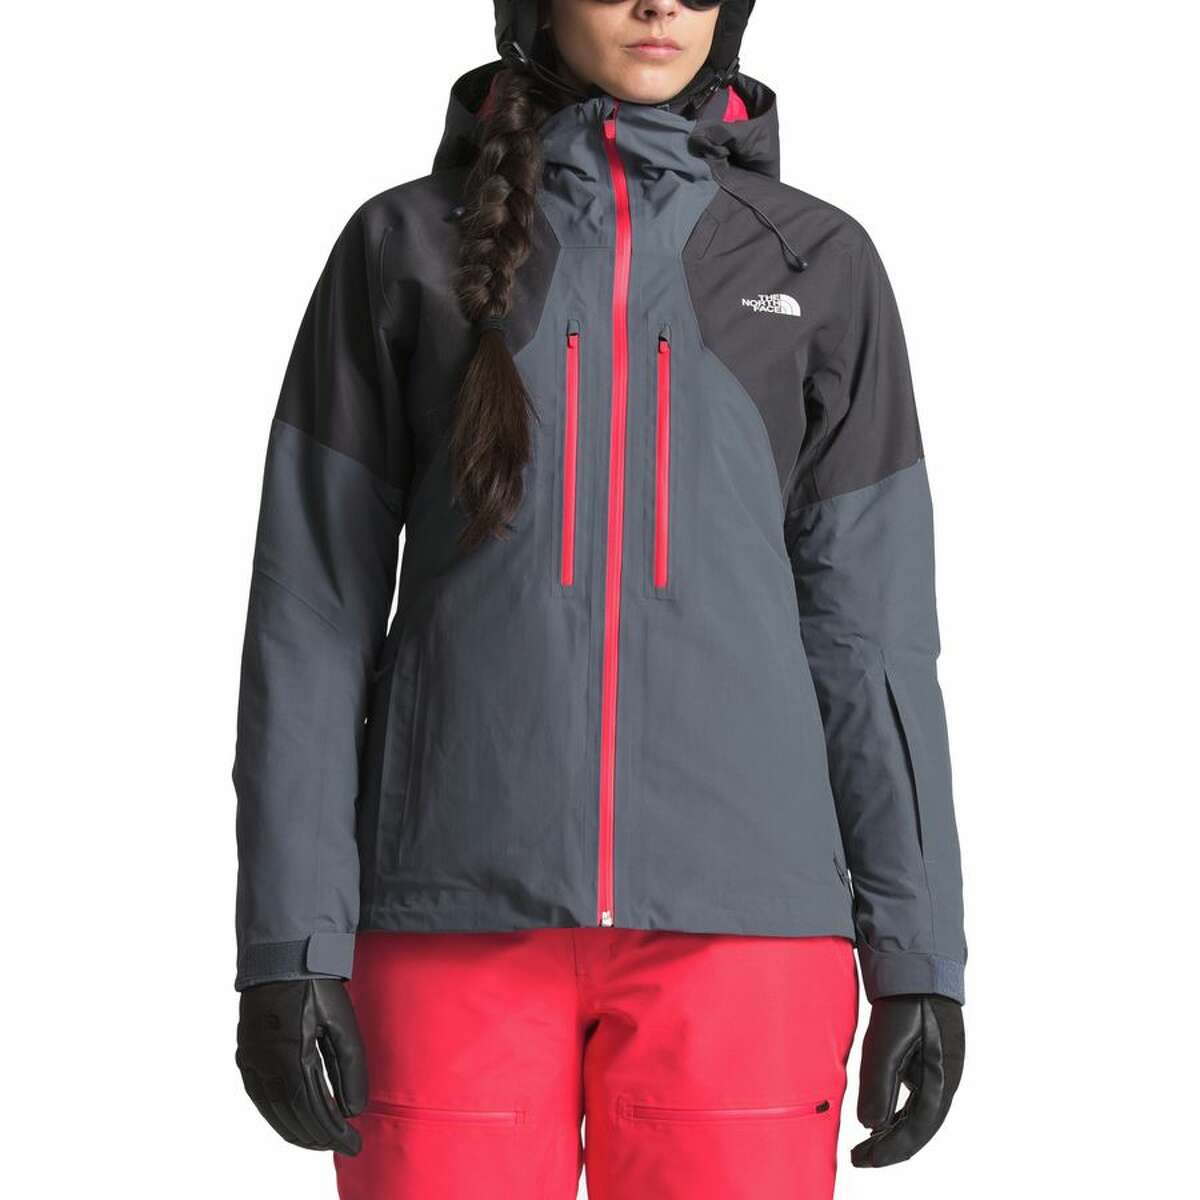 40% off The North Face Women's Powder Guide Hooded Jacket Buy on Backcountry